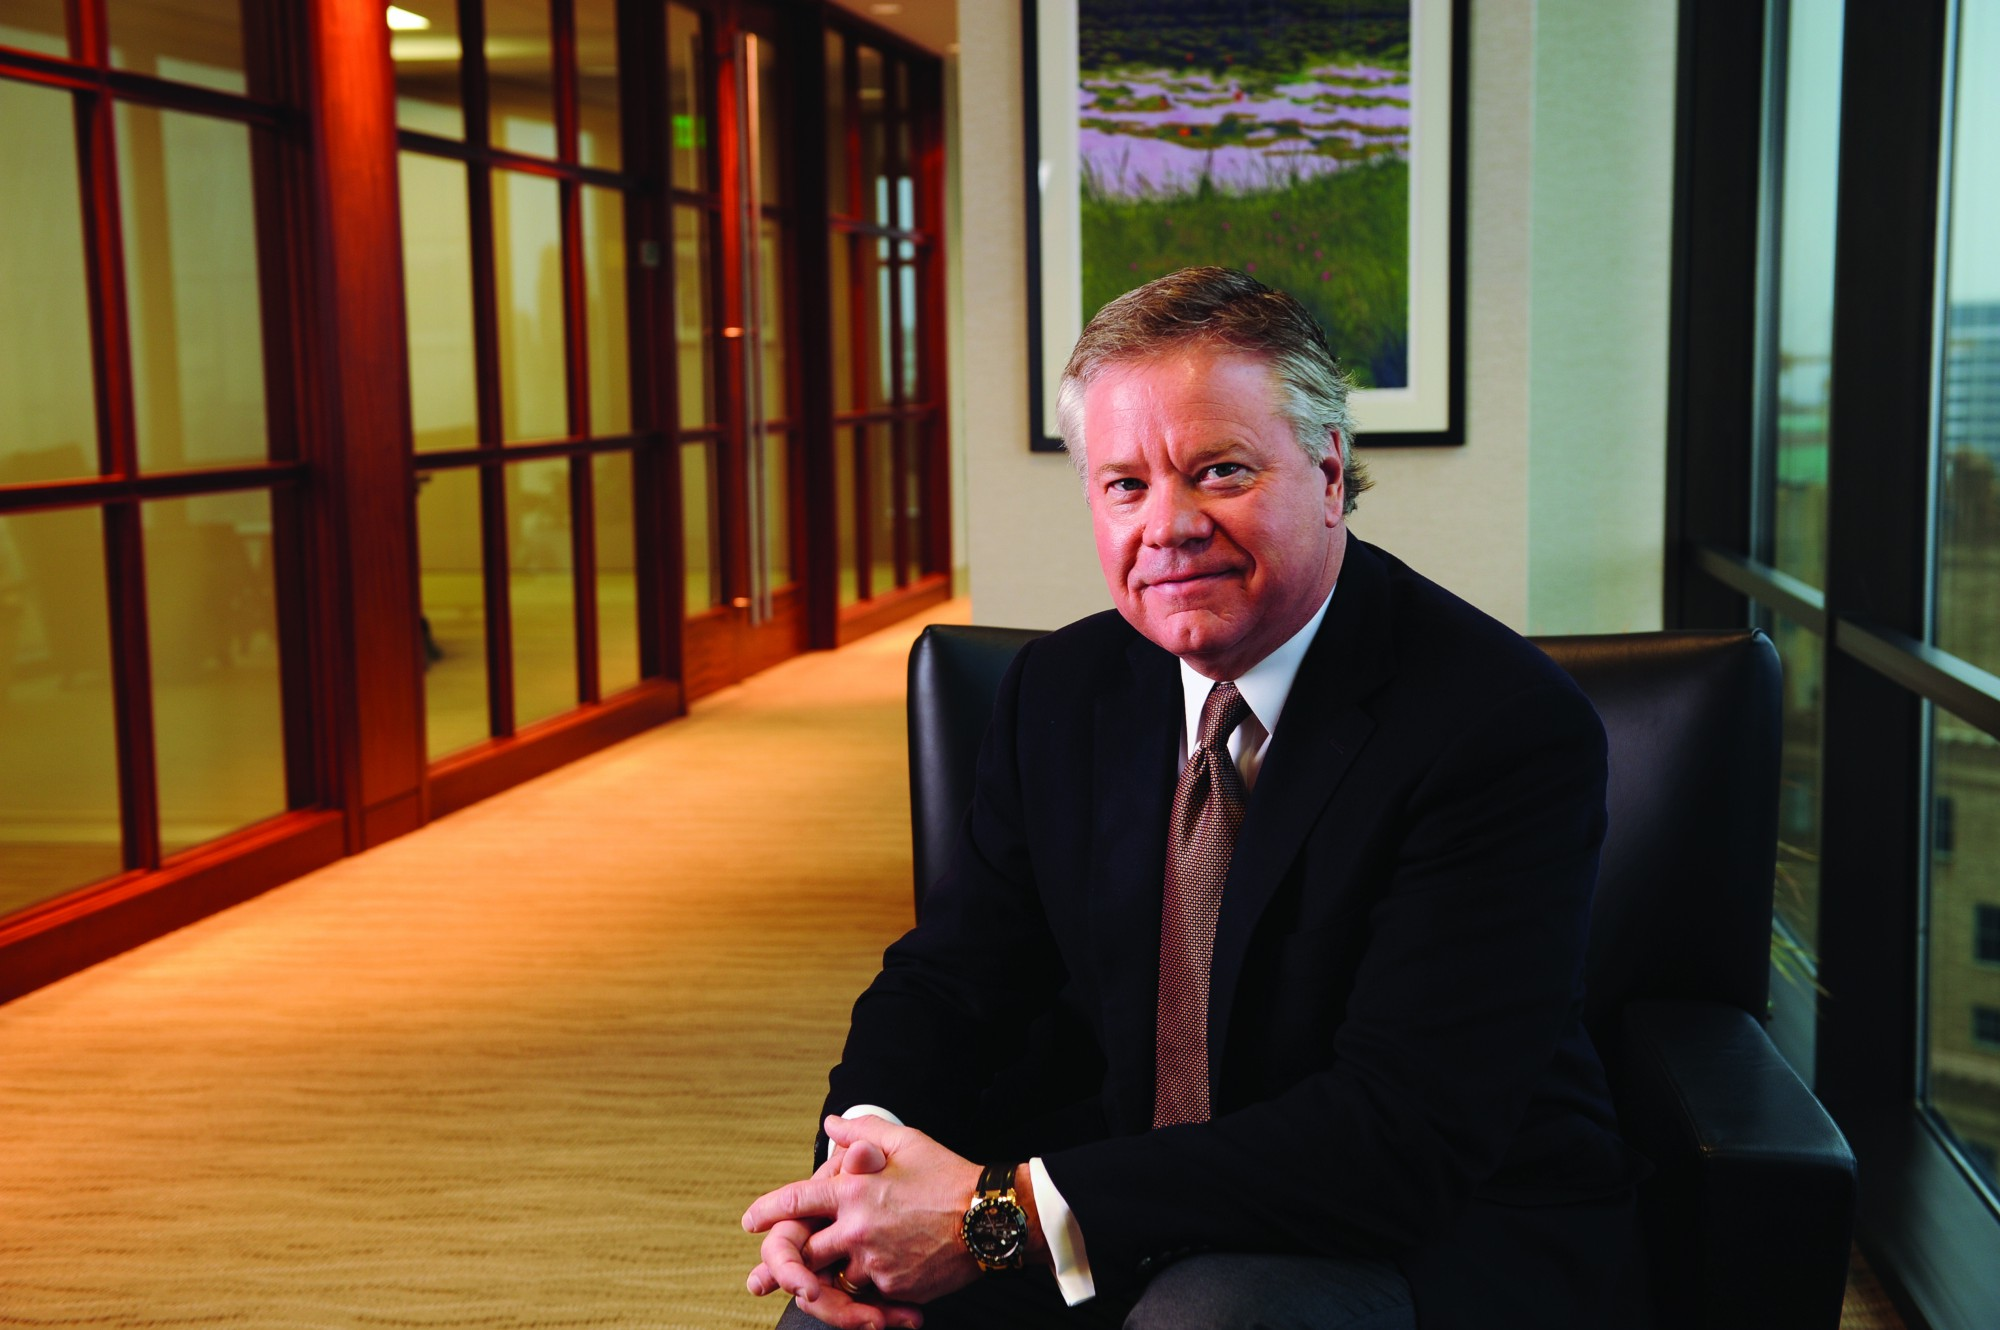 John C. Goff sits in an office wearing a suit